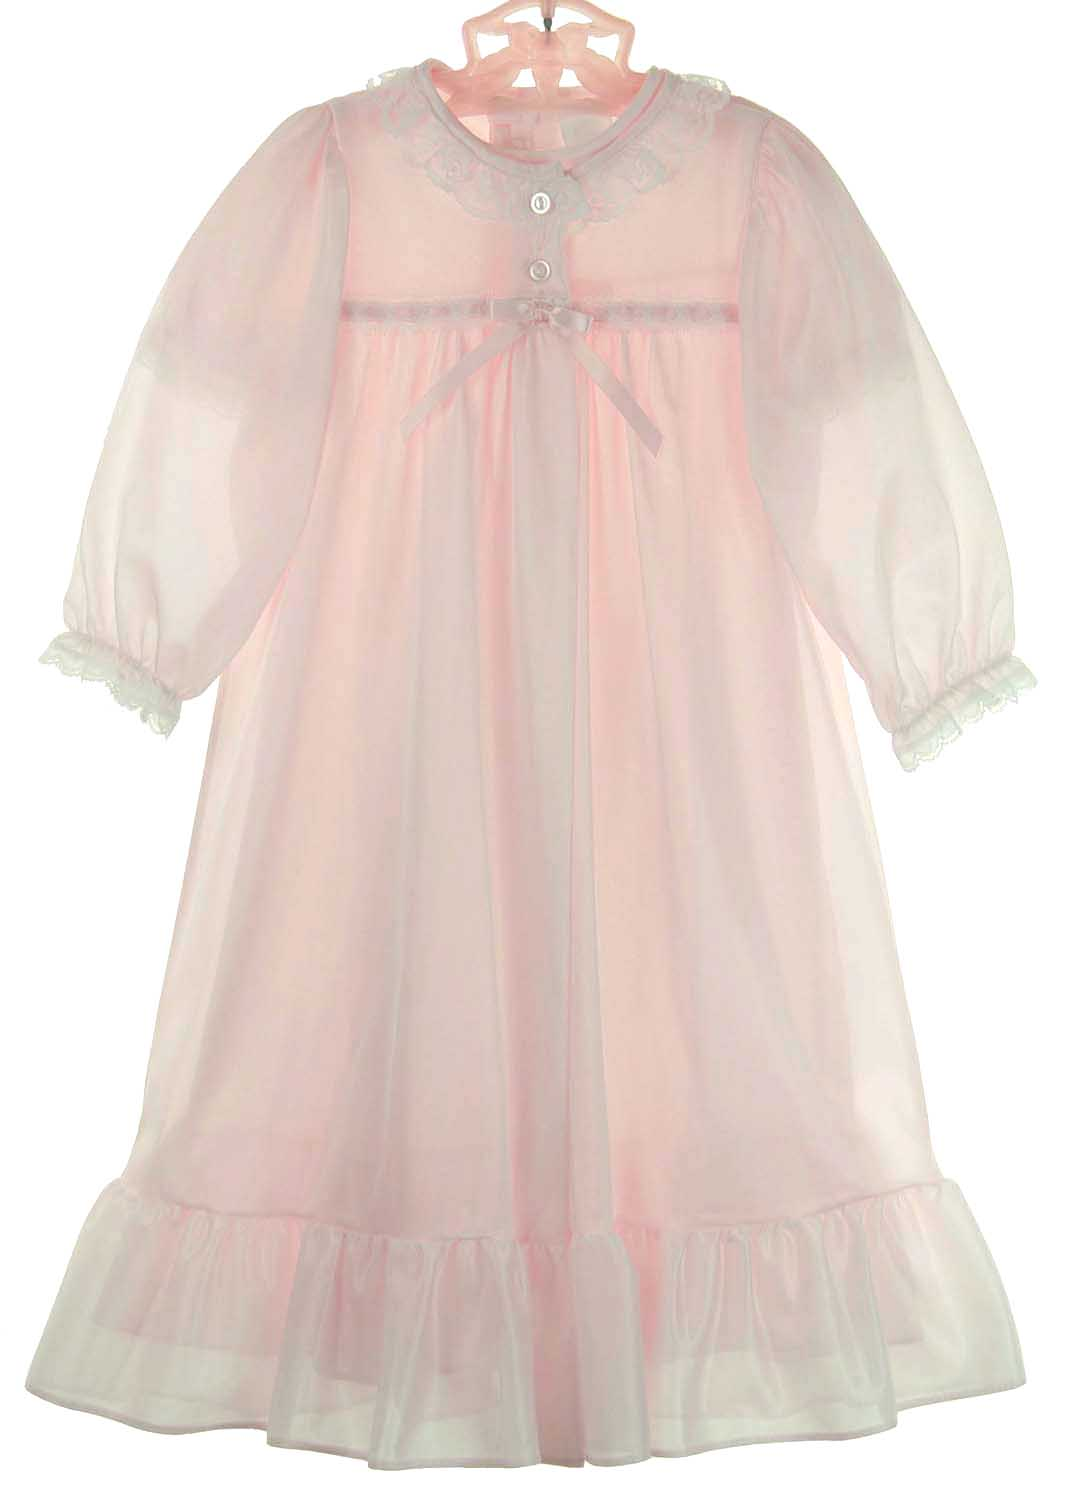 Pink Peignoir Settoddlers Nightgown And Robe Setgirls